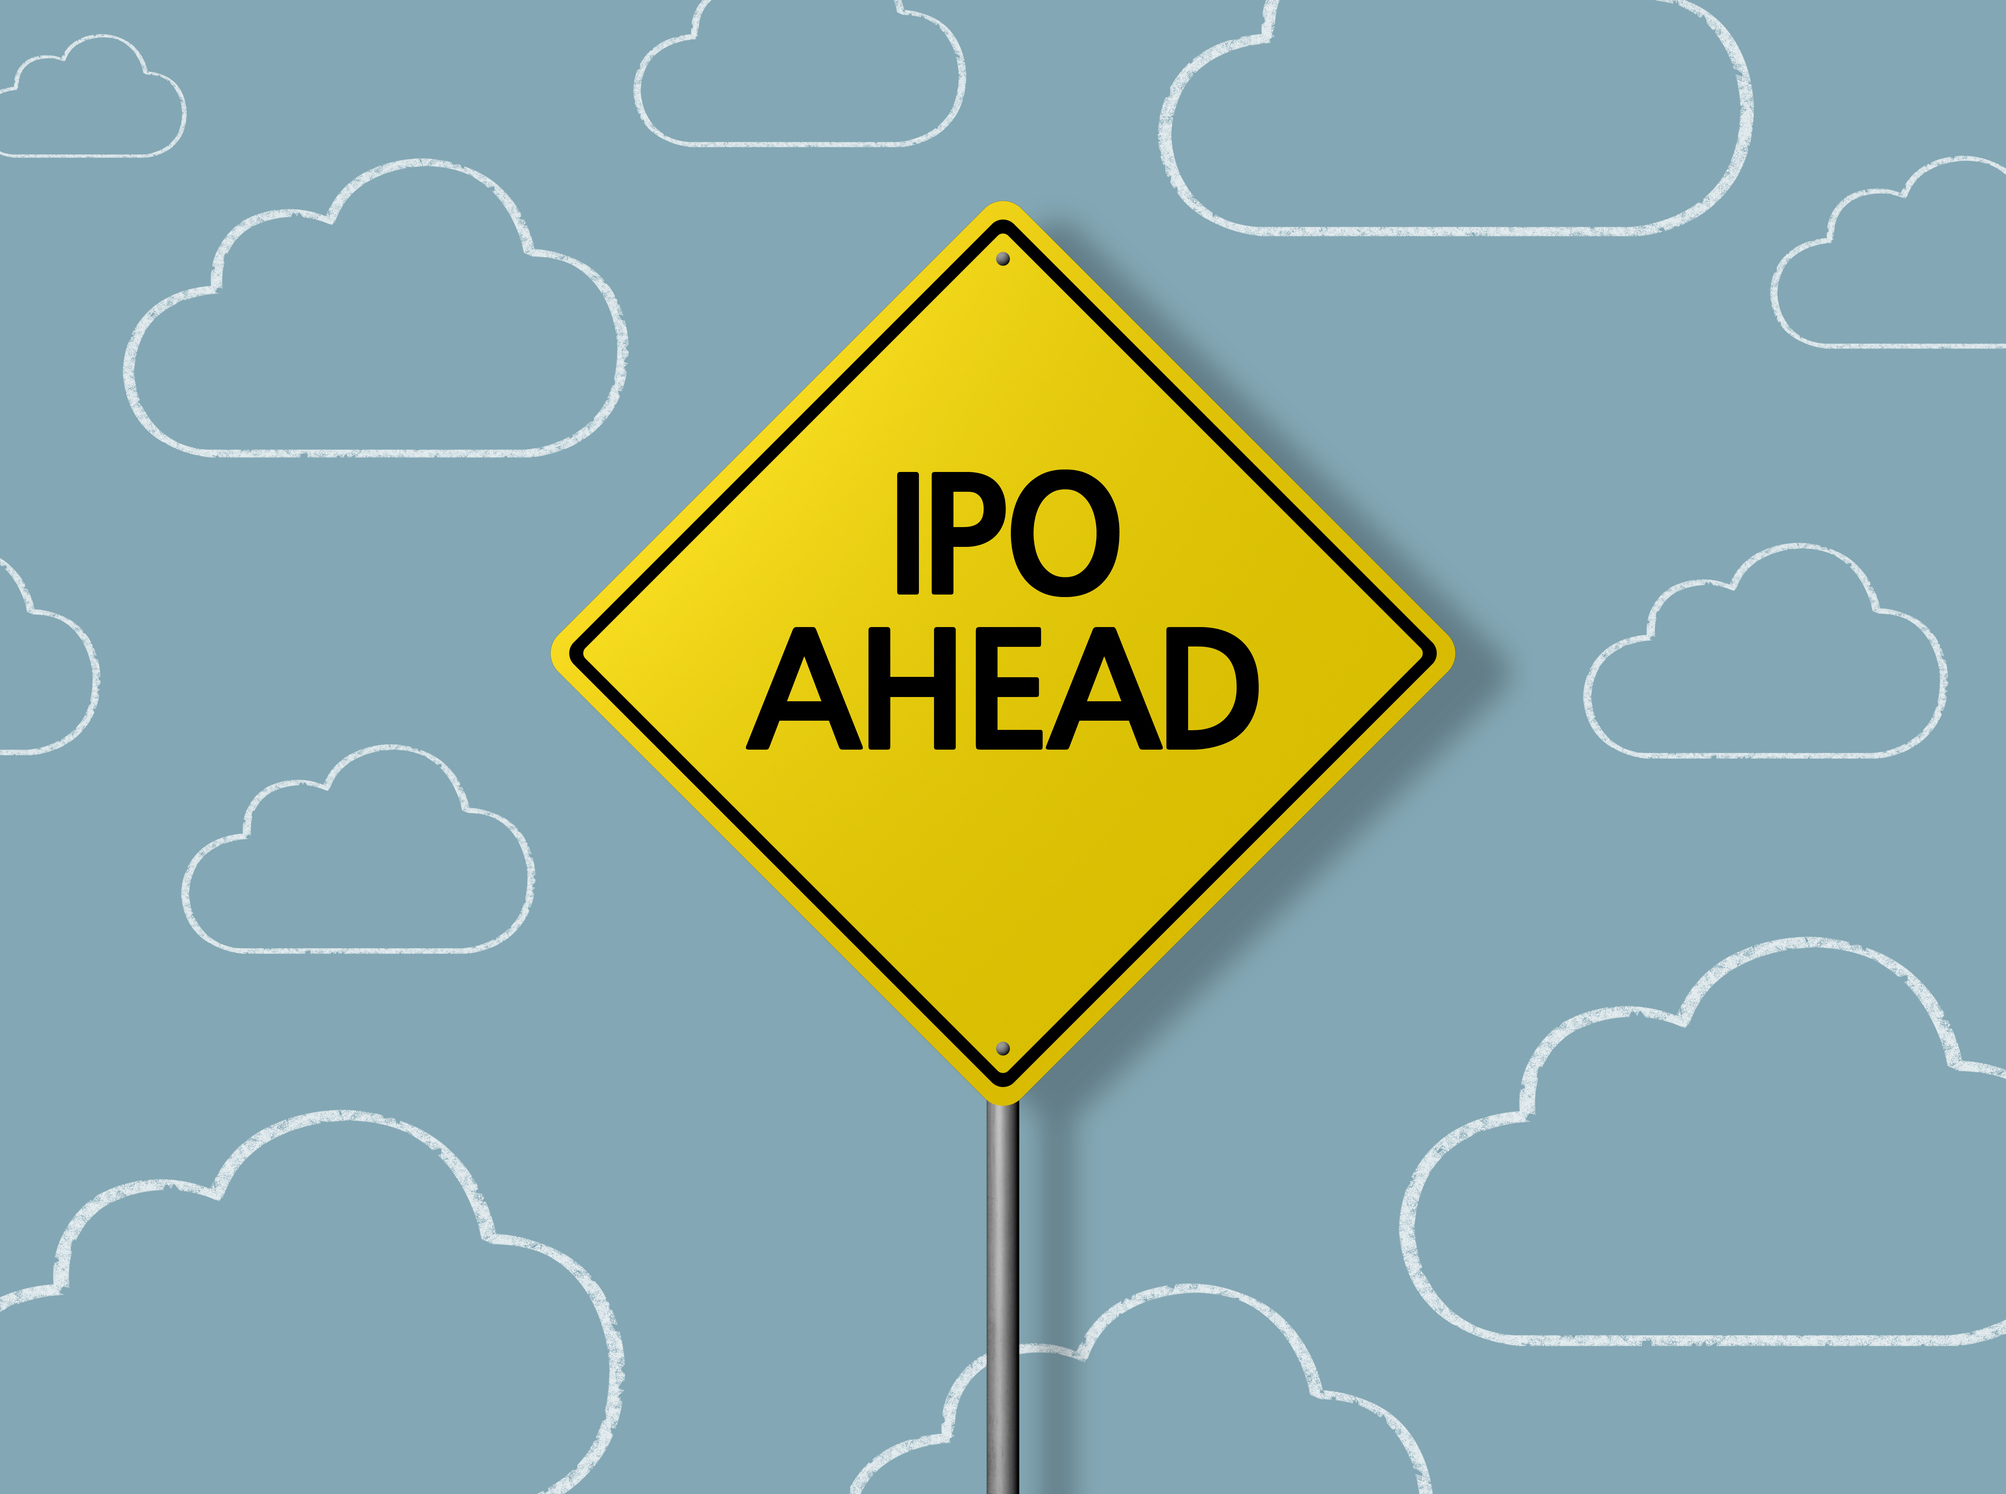 What year did oia open their ipo